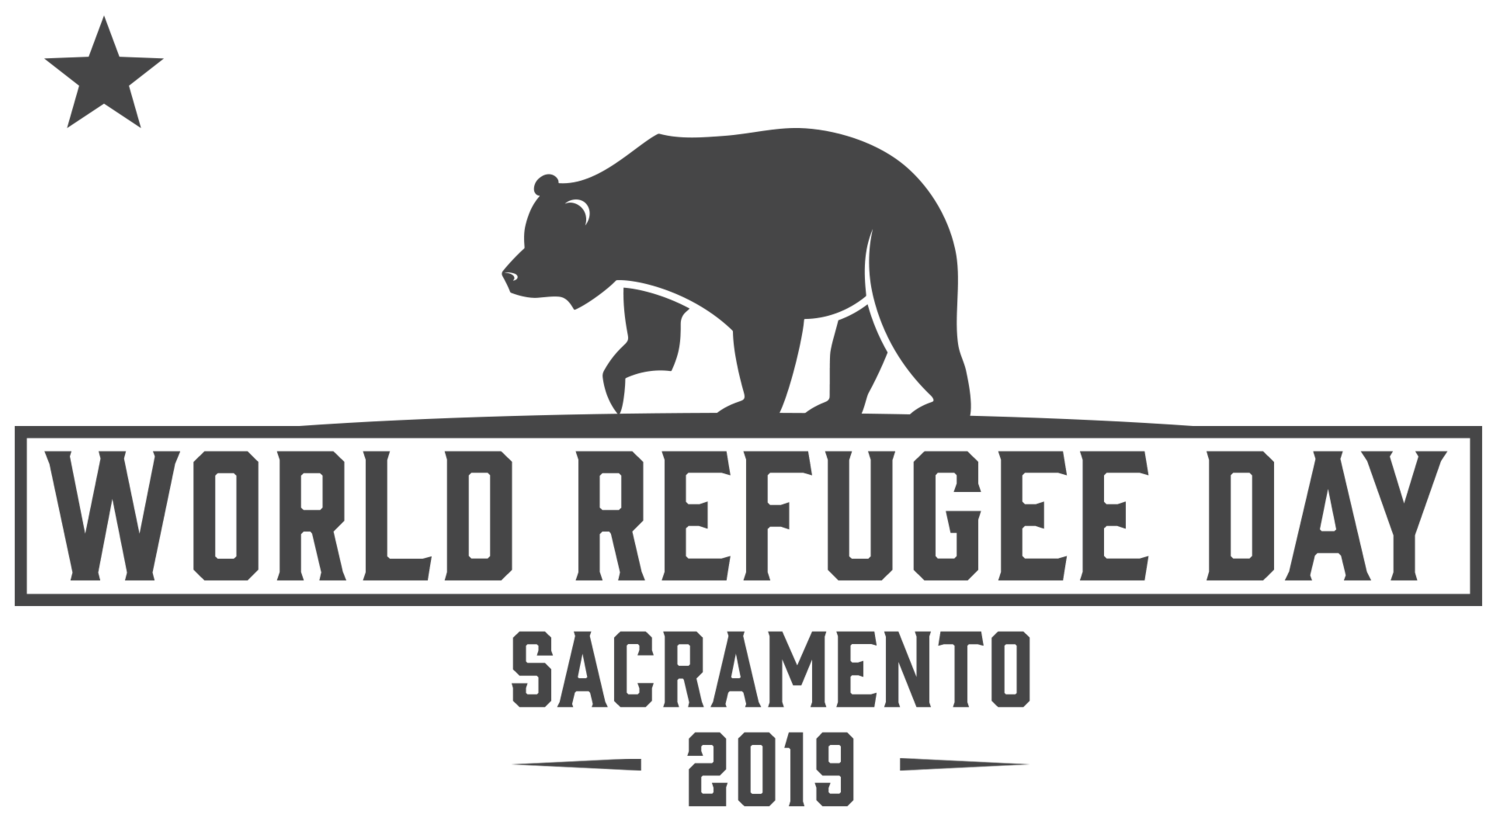 Sacramento World Refugee Day 2019